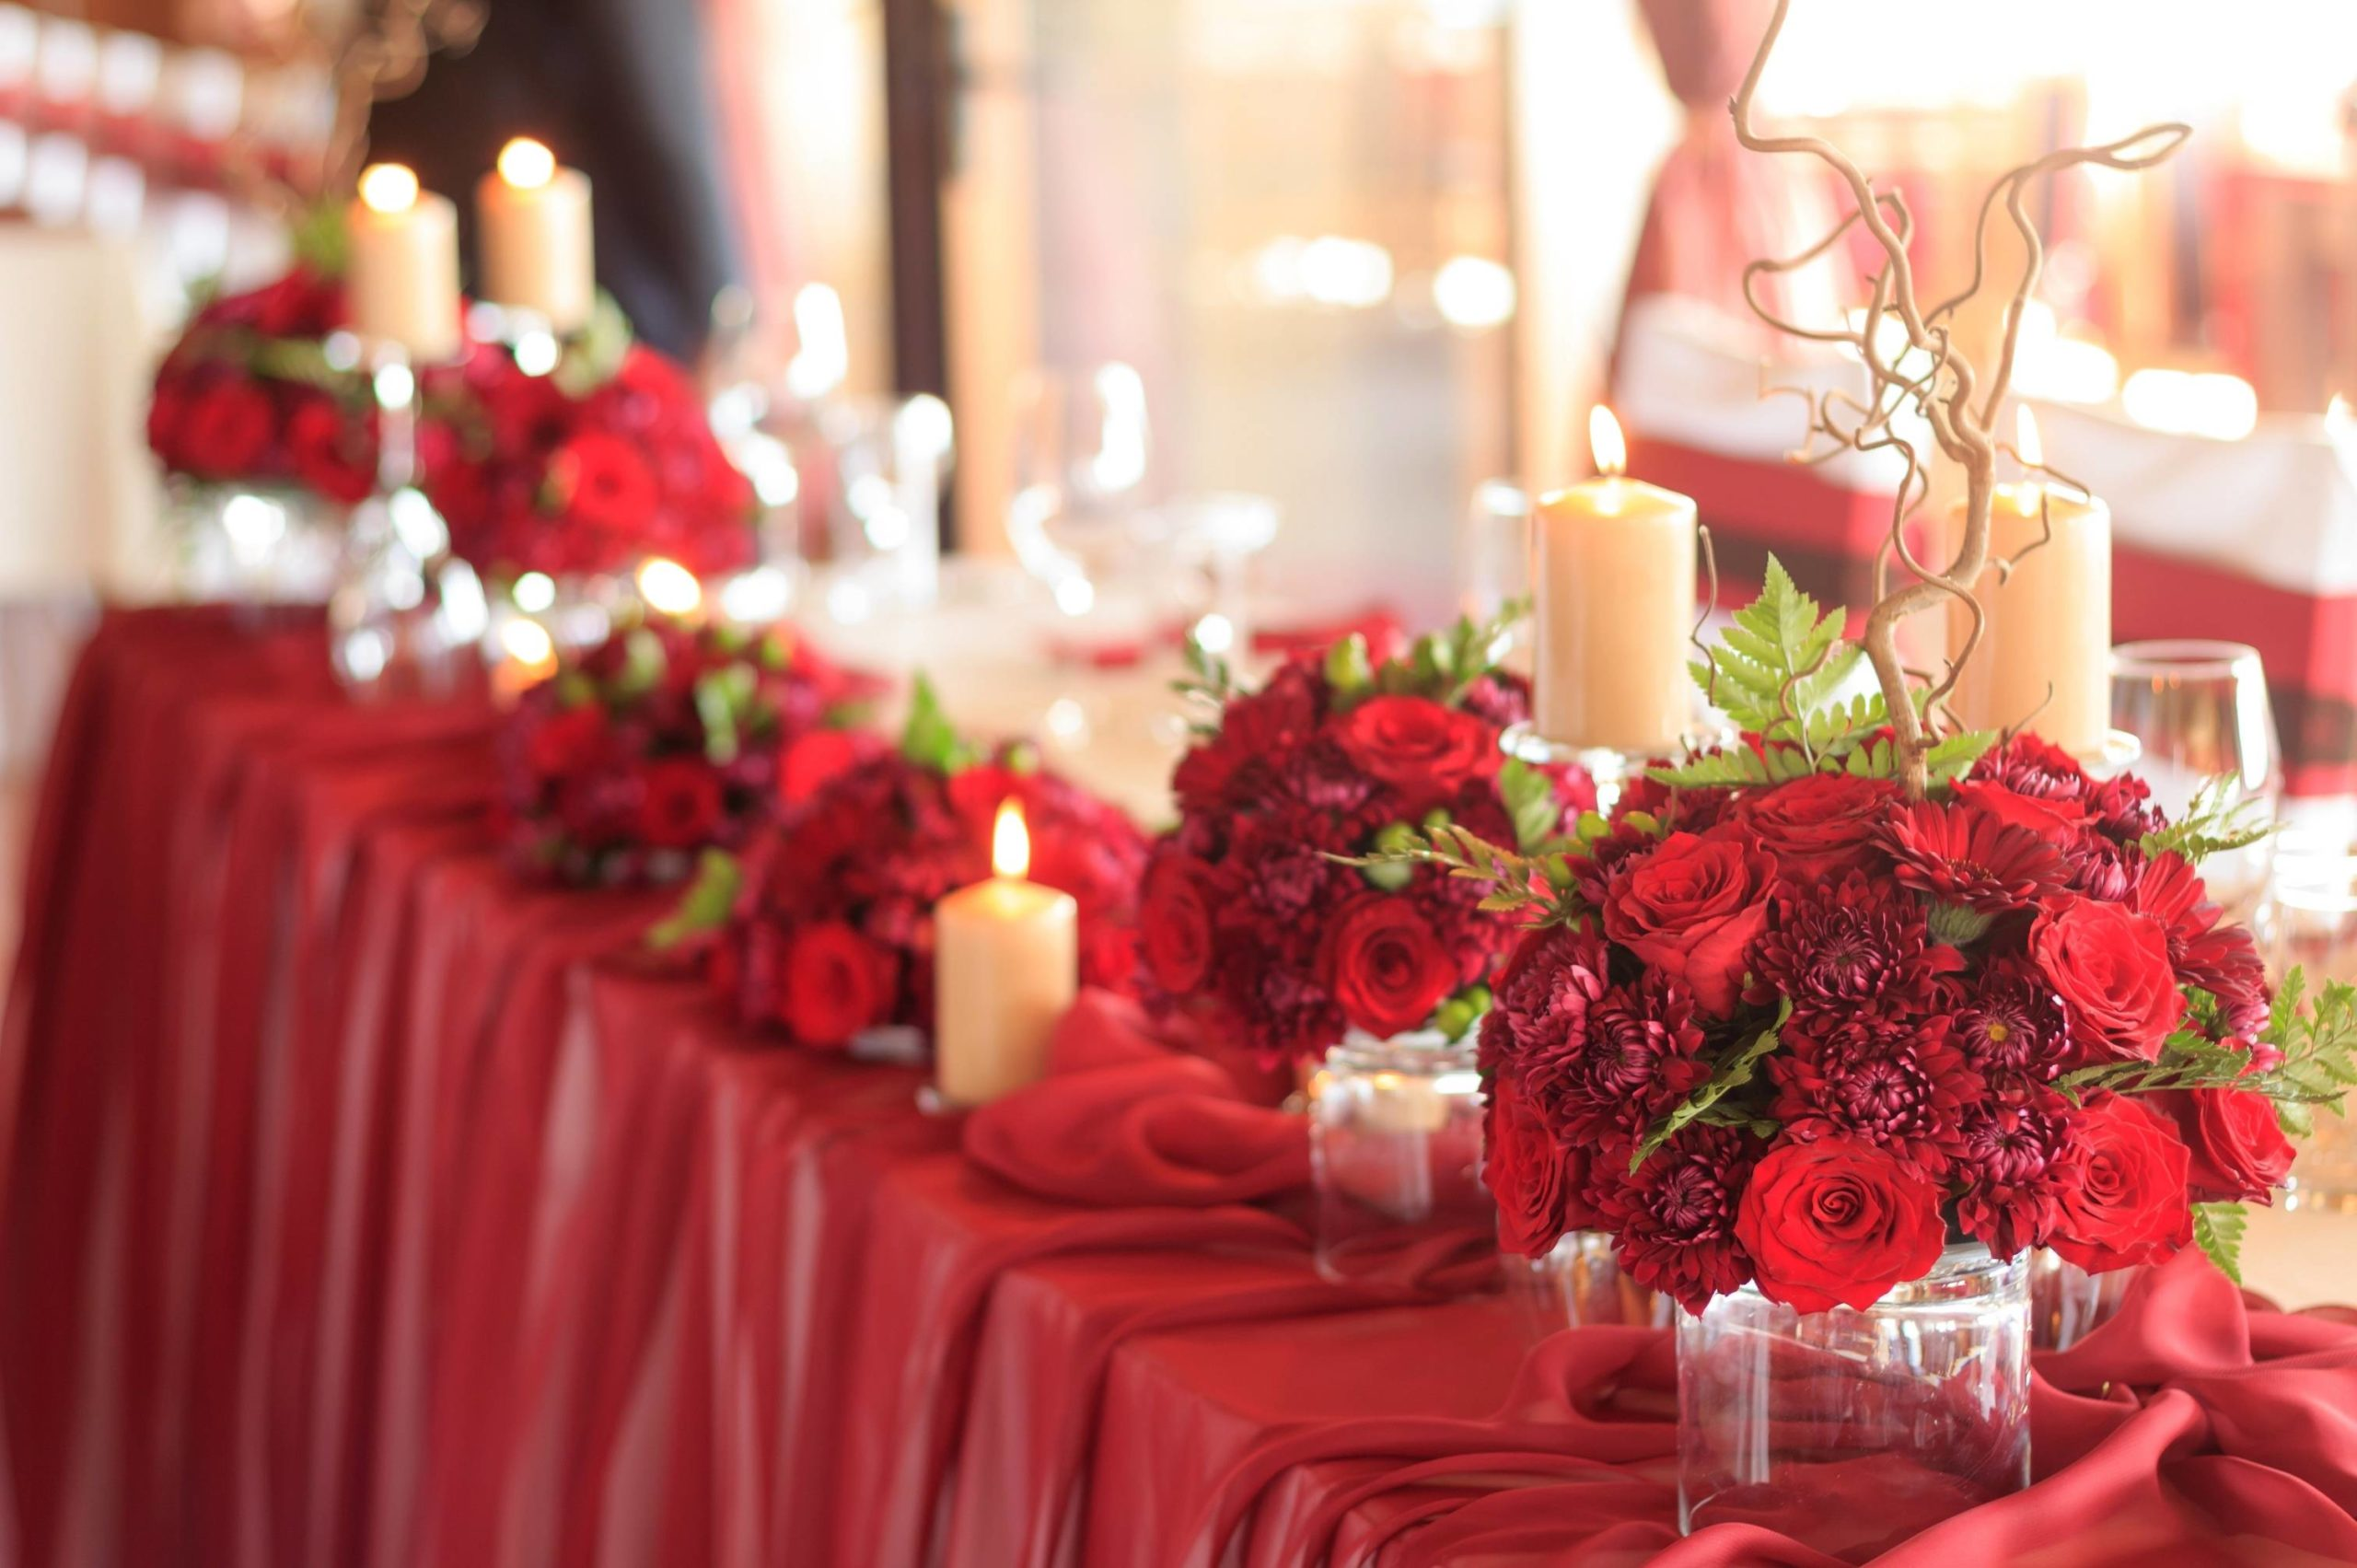 decoration de table de mariage couleur rouge